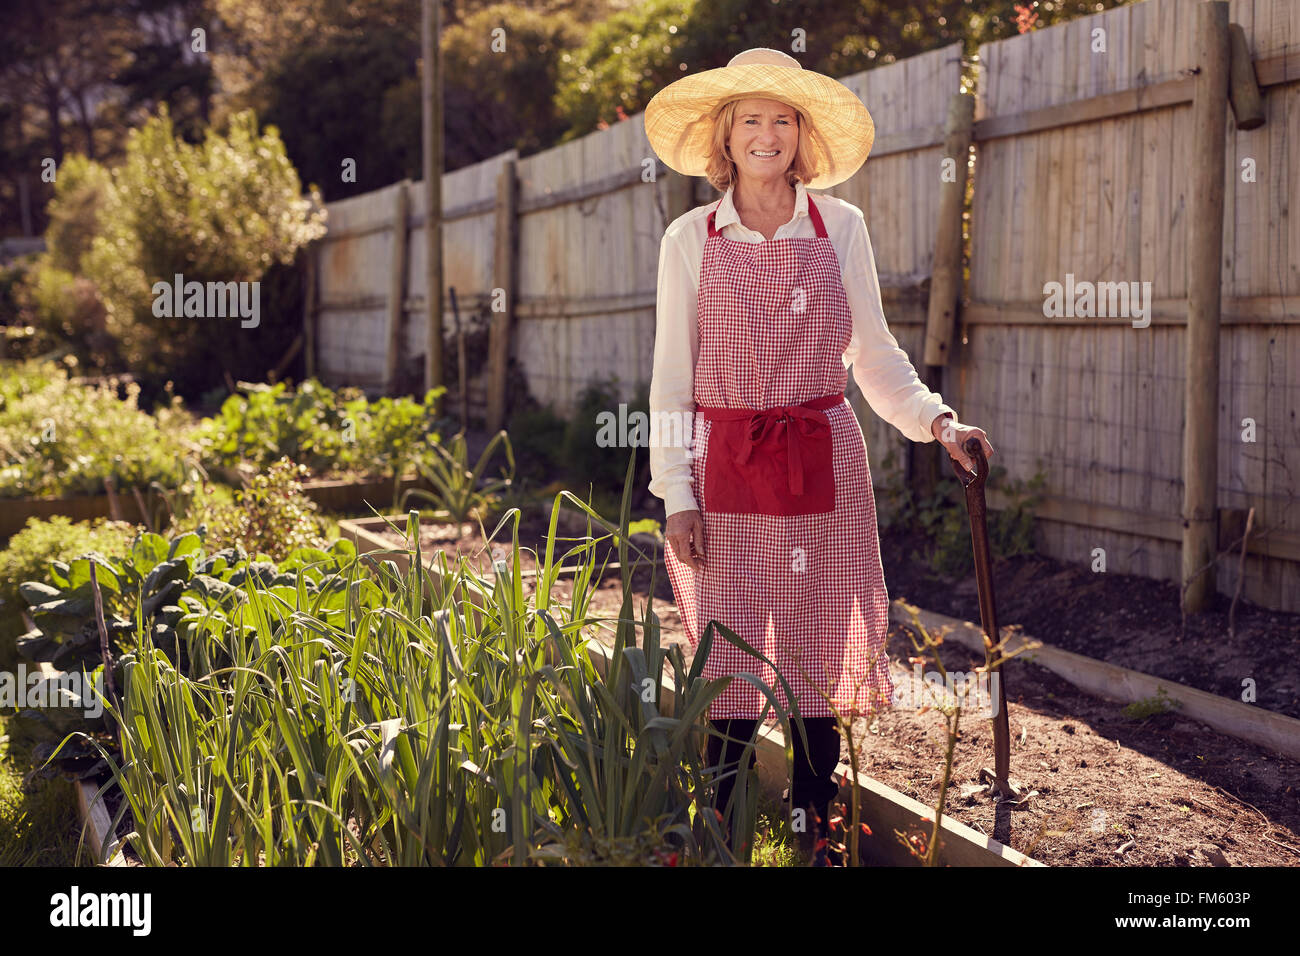 5f4ba8982586a Portrait of a smiling senior woman standing in an urban food garden with a  work tool in a raised bed